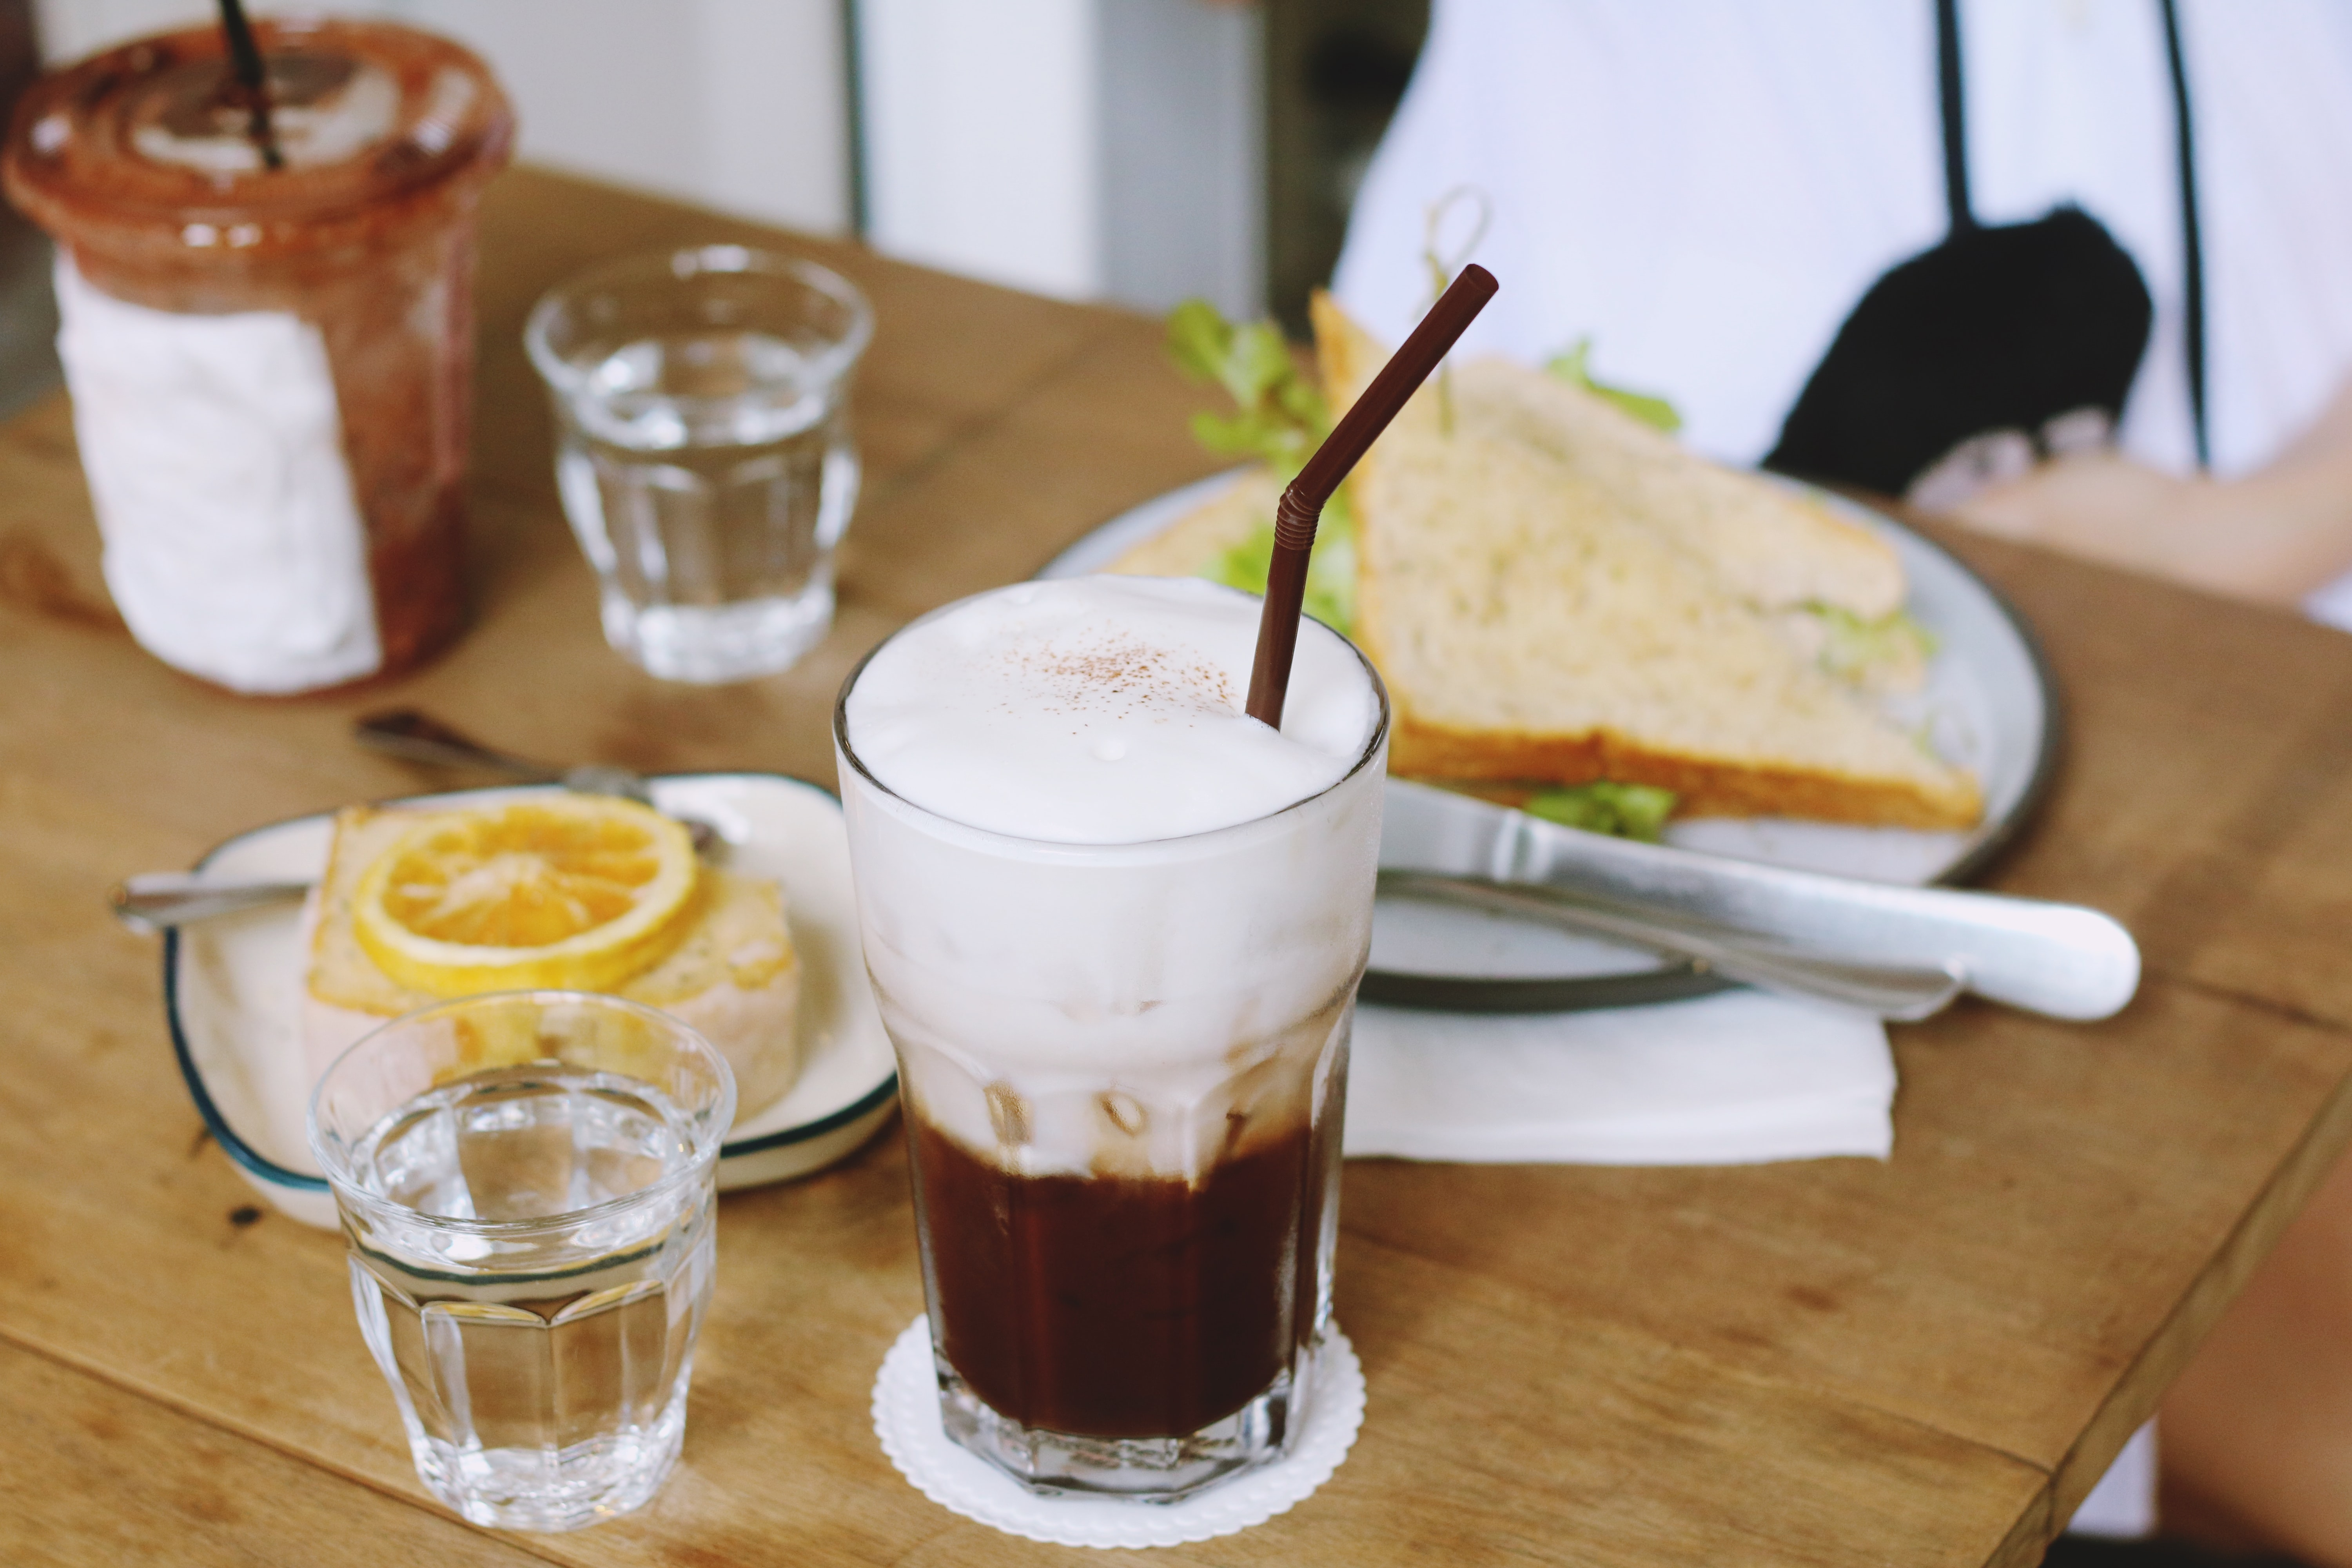 clear drinking glass filled with brown liquid in front of plate sandwich on table